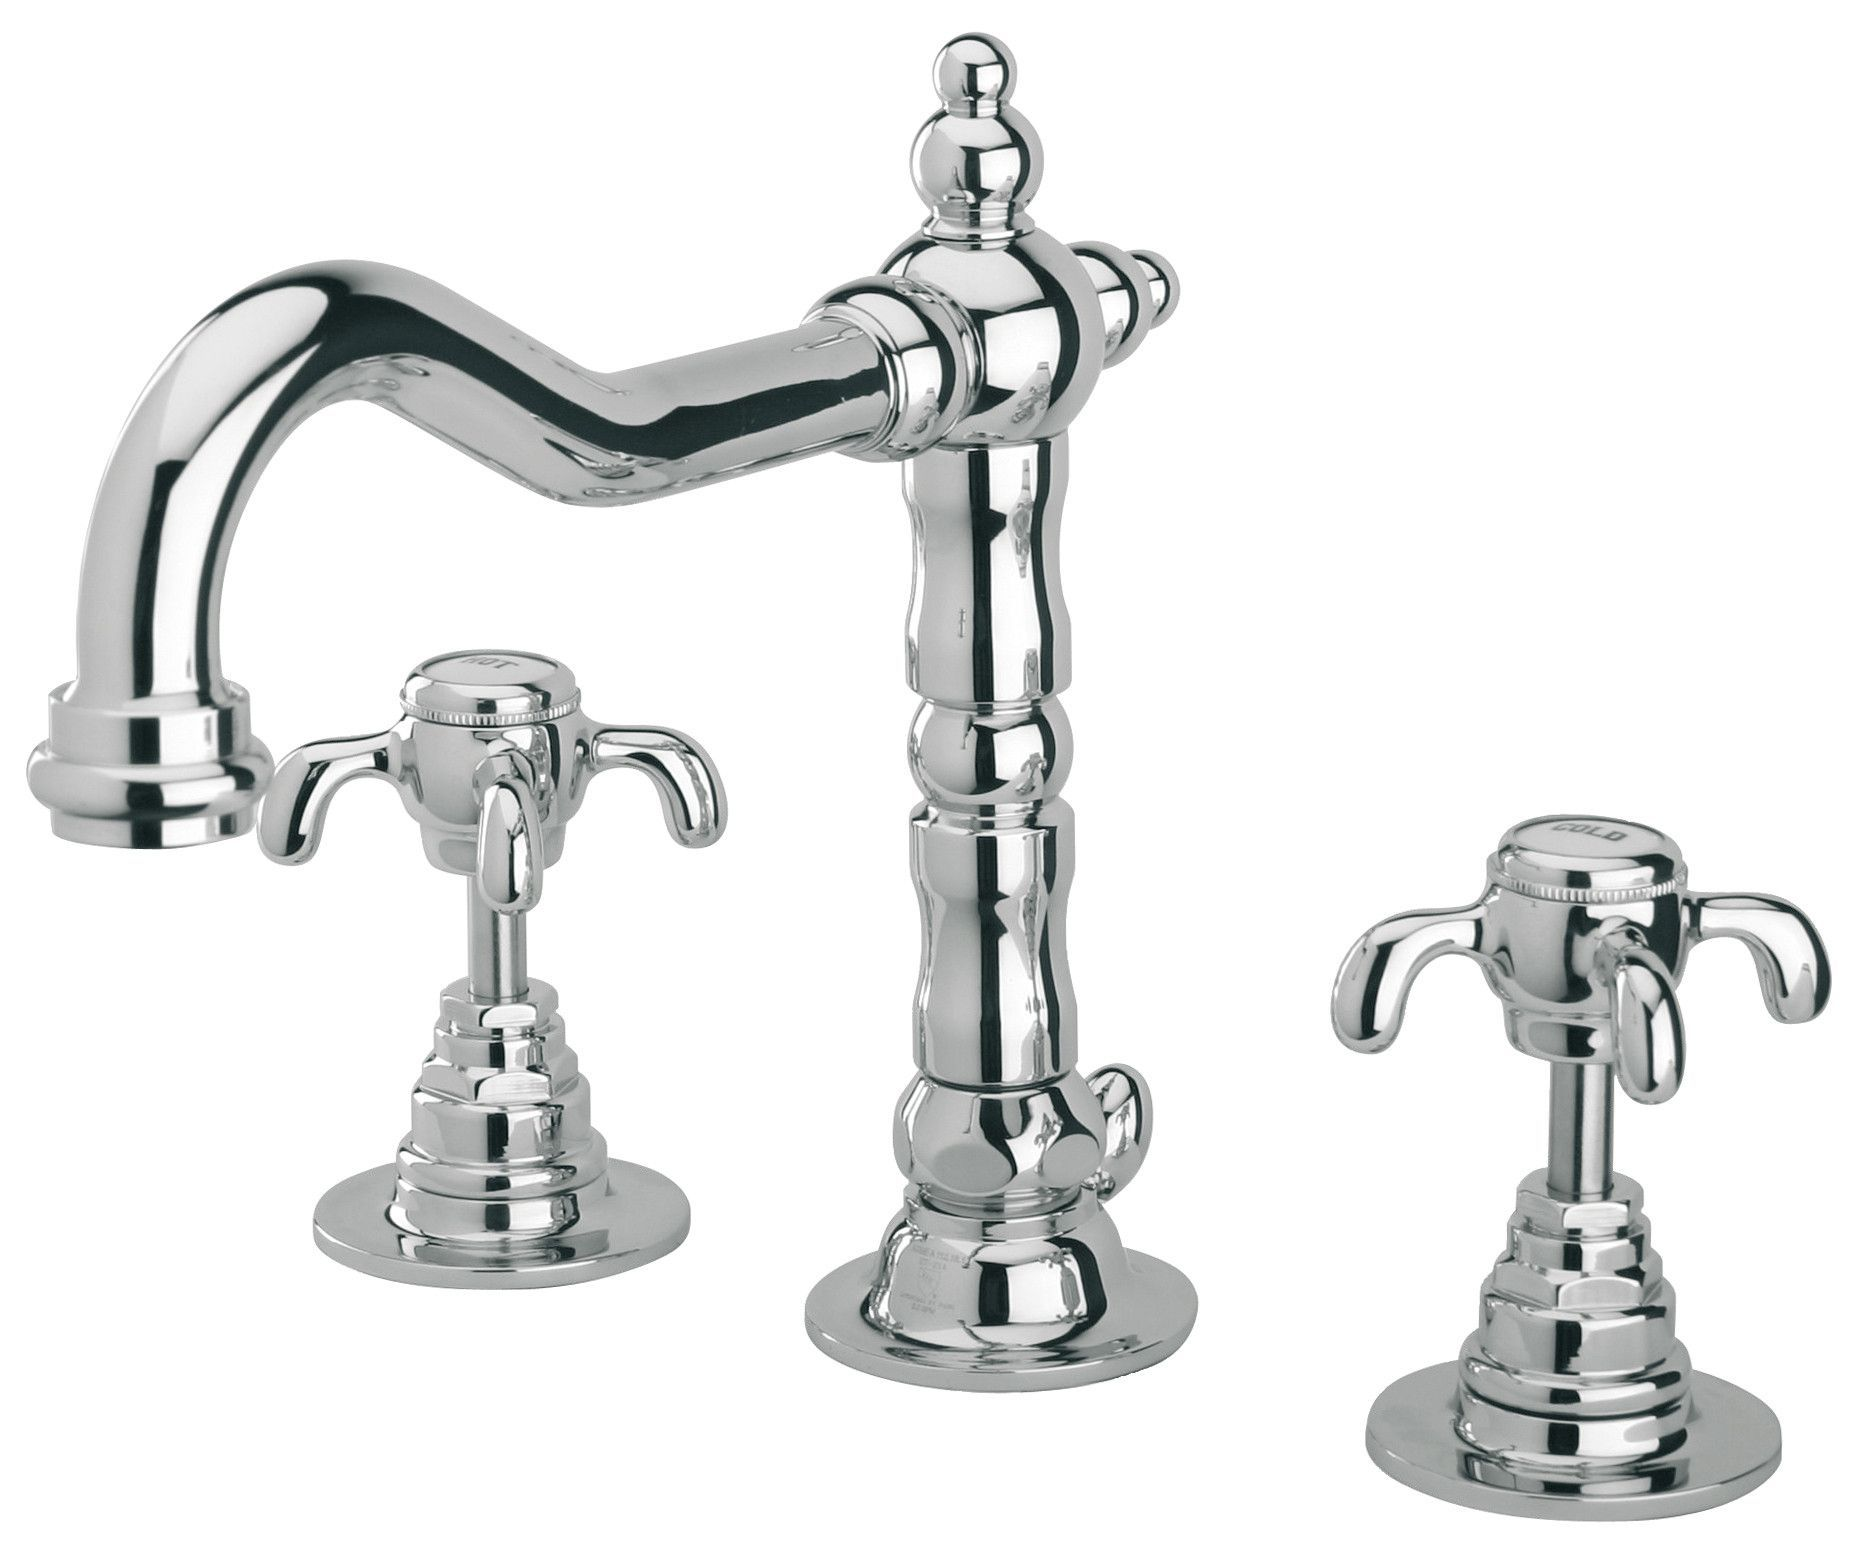 LaToscana Ornellaia Widespread Faucet with Cross Handles | Pinterest ...